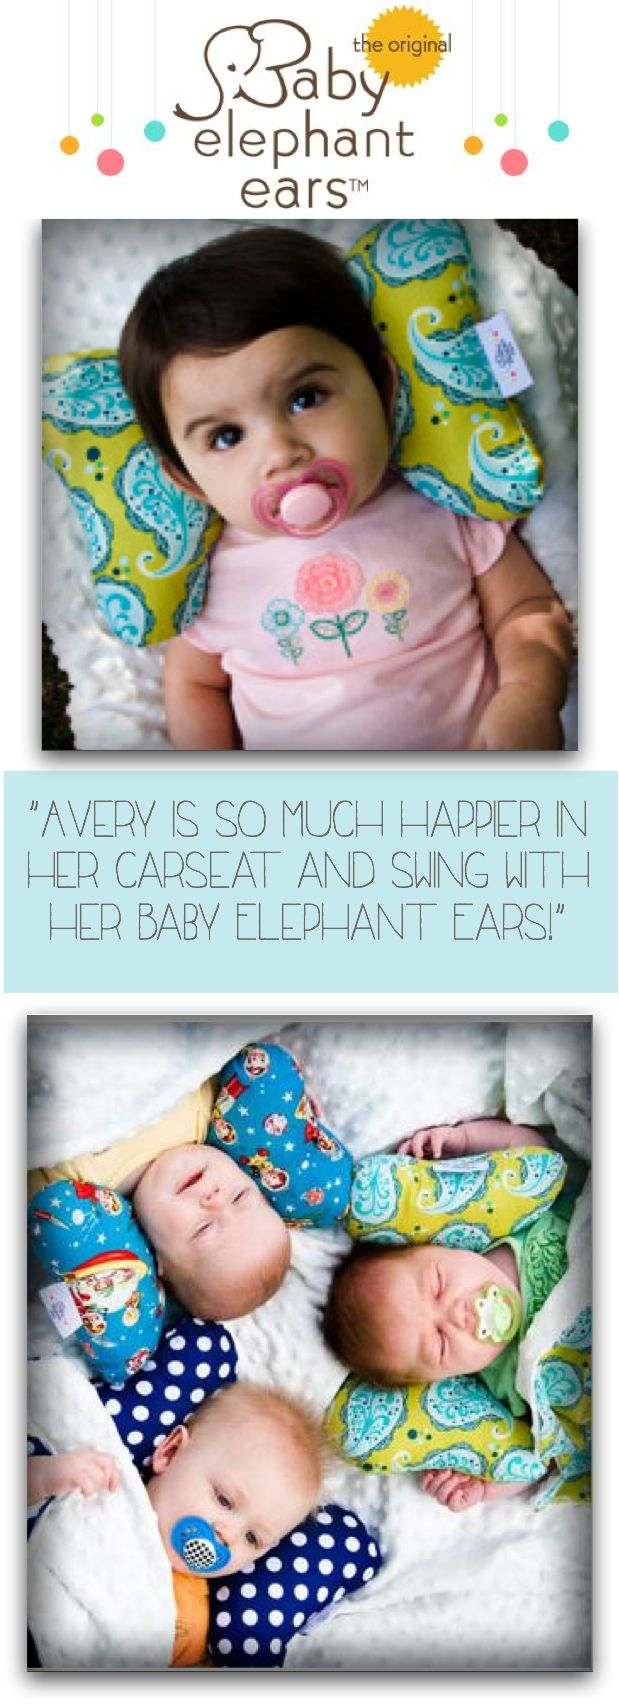 An awesome tool for fussy babies! Baby Elephant Ears support baby's neck in the carseat, stroller, bouncy chair, etc. while their little neck muscles are developing.  Prevents that uncomfortable looking baby slump that leads to uneven muscle tone and flat spots on baby's head! http://www.shopteenybee.com/search/results?q=support%20pillow $21.95